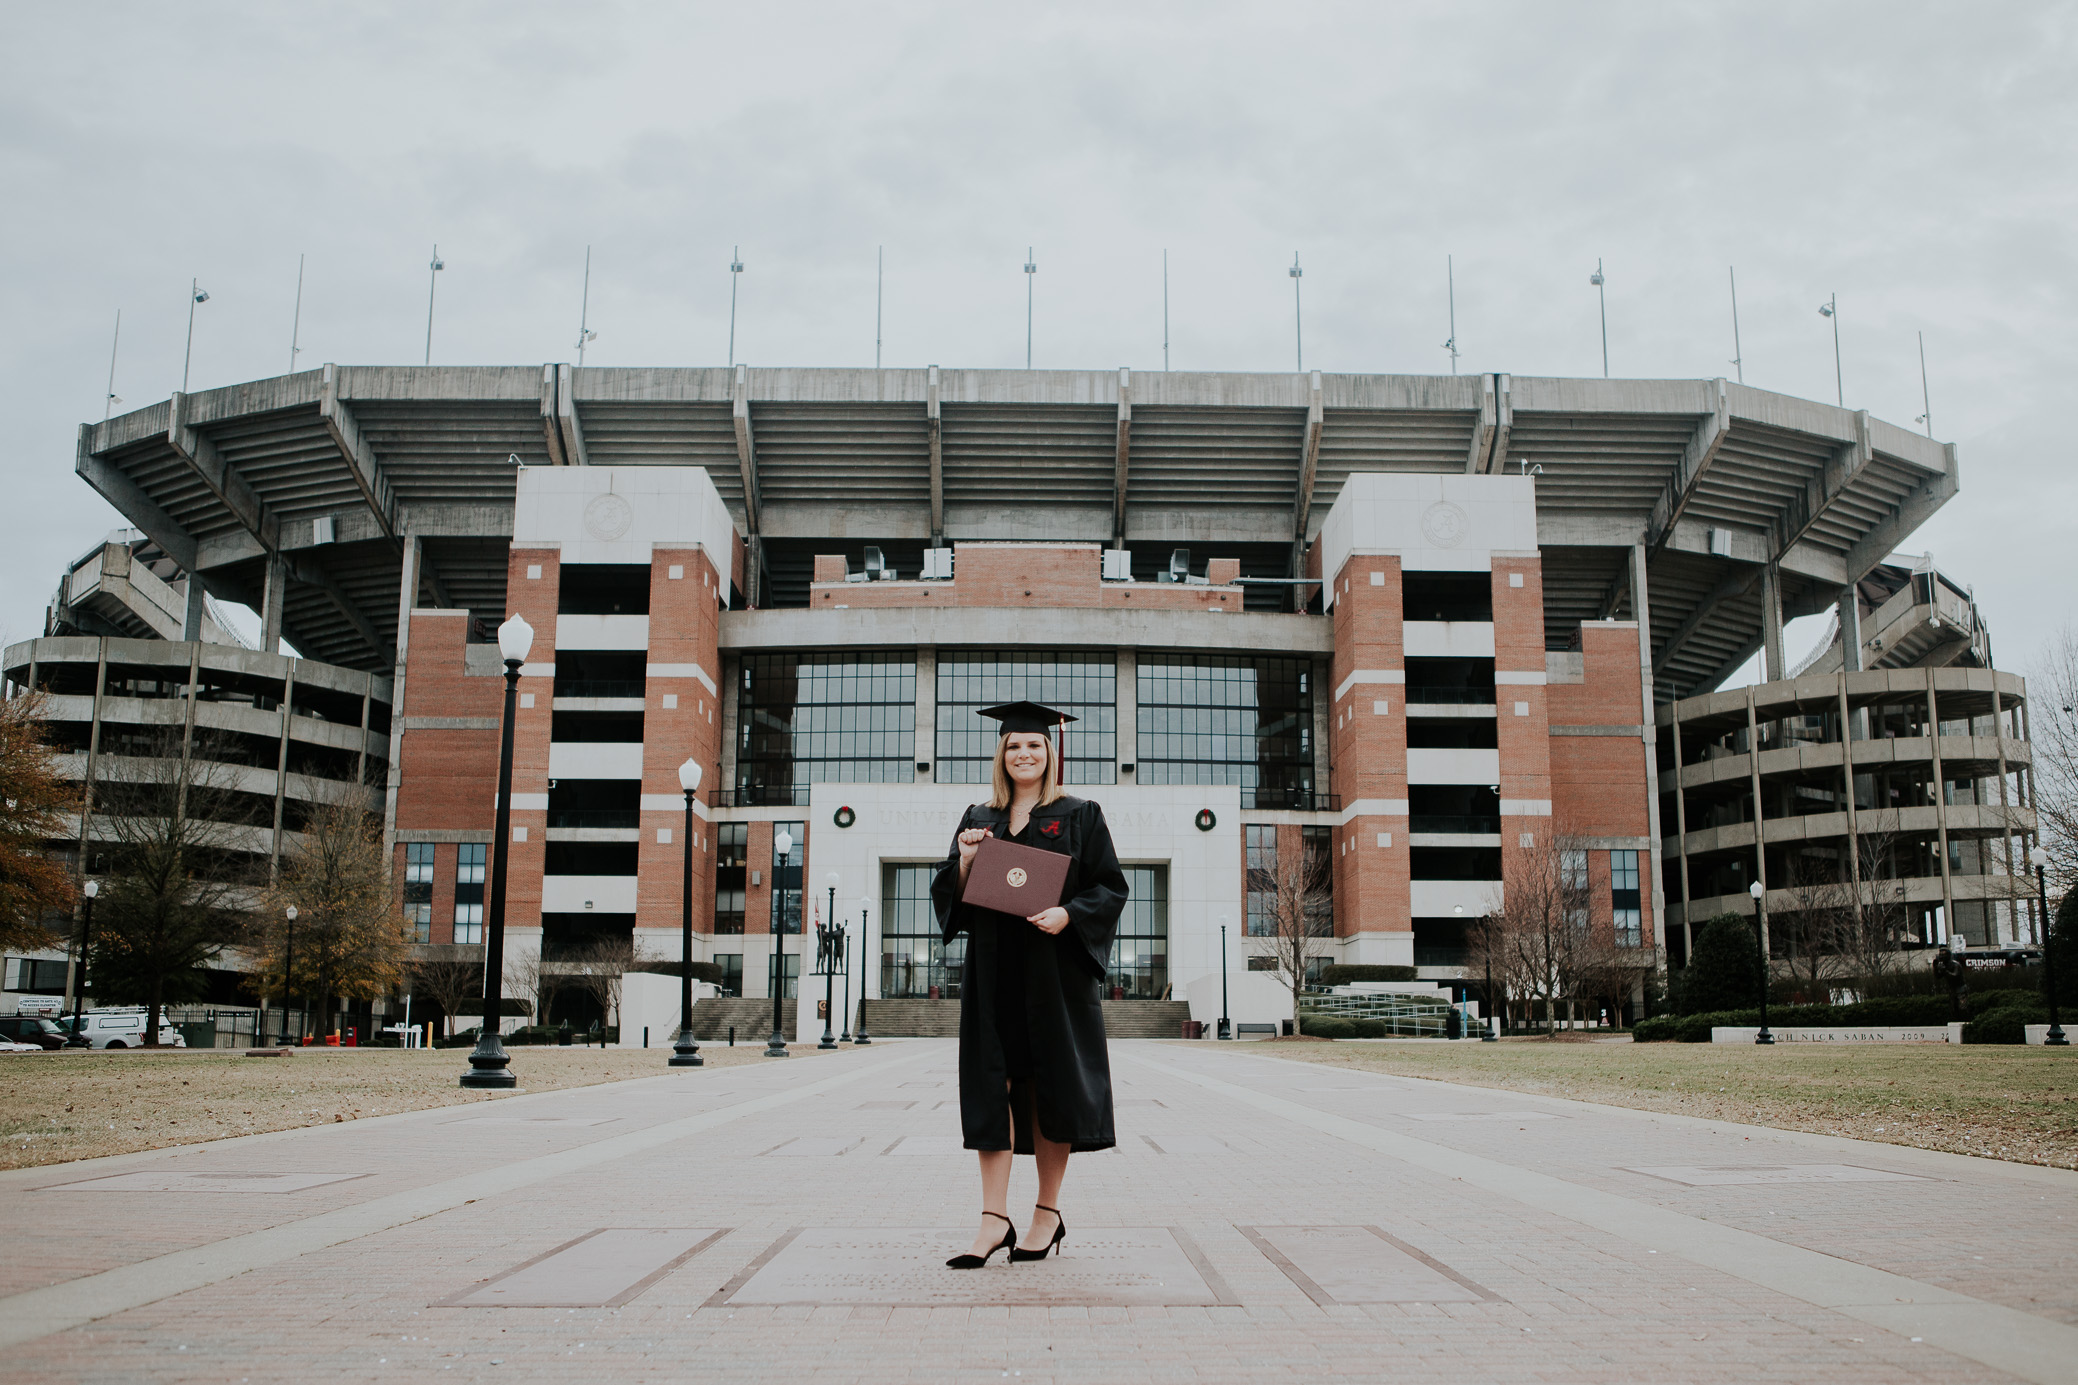 College graduation photos at The University of Alabama in Tuscaloosa, Alabama by David A. Smith of DSmithImages Wedding Photography, Portraits, and Events in Birmingham, Alabama